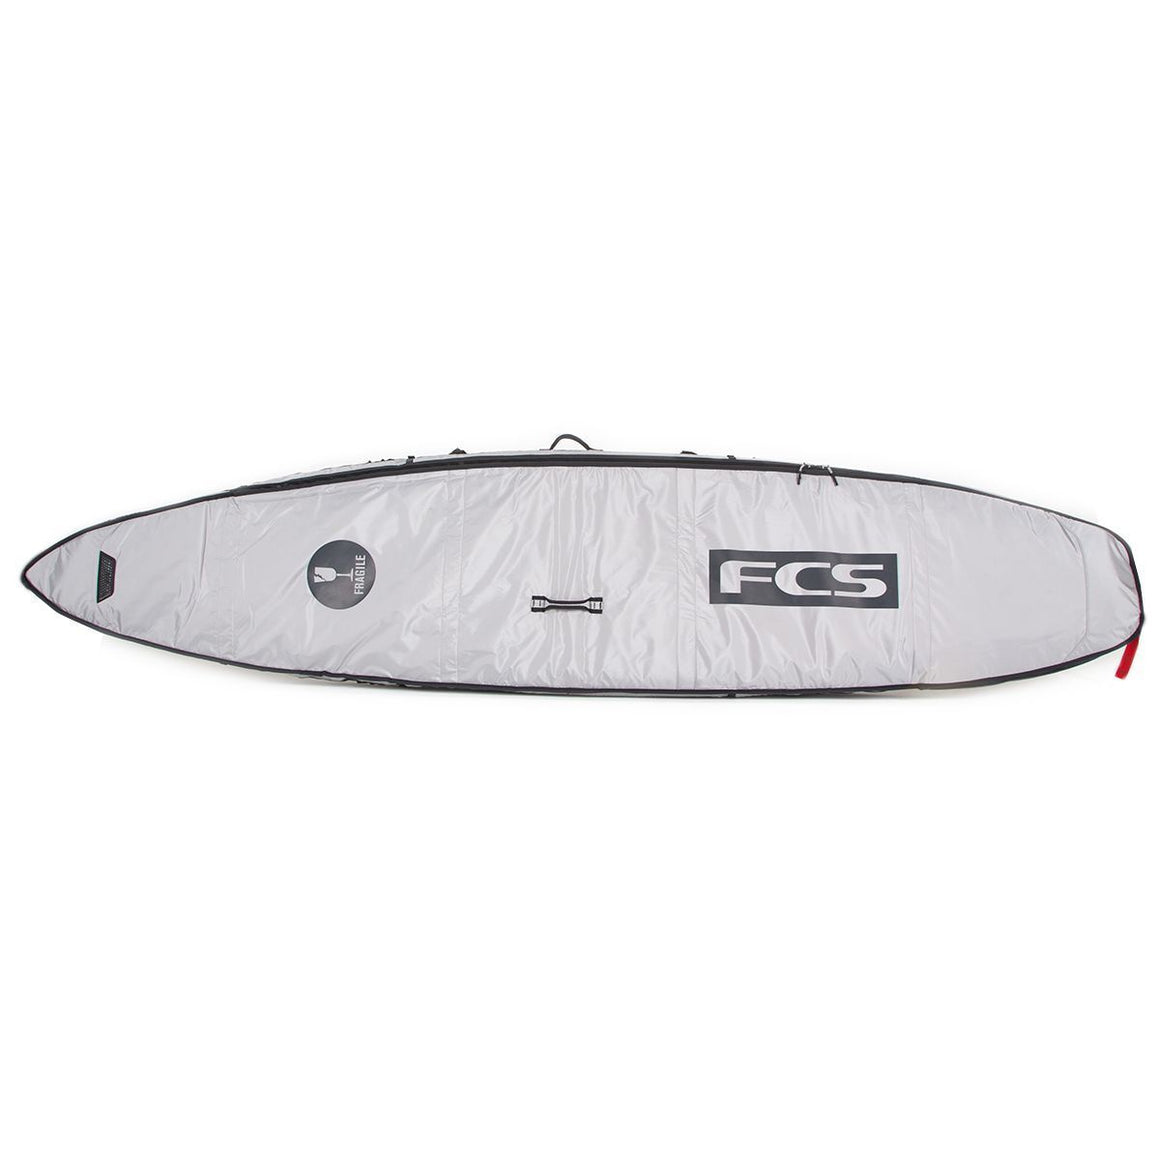 FCS board bag - SUP Racing Cover Cool Grey 12'6